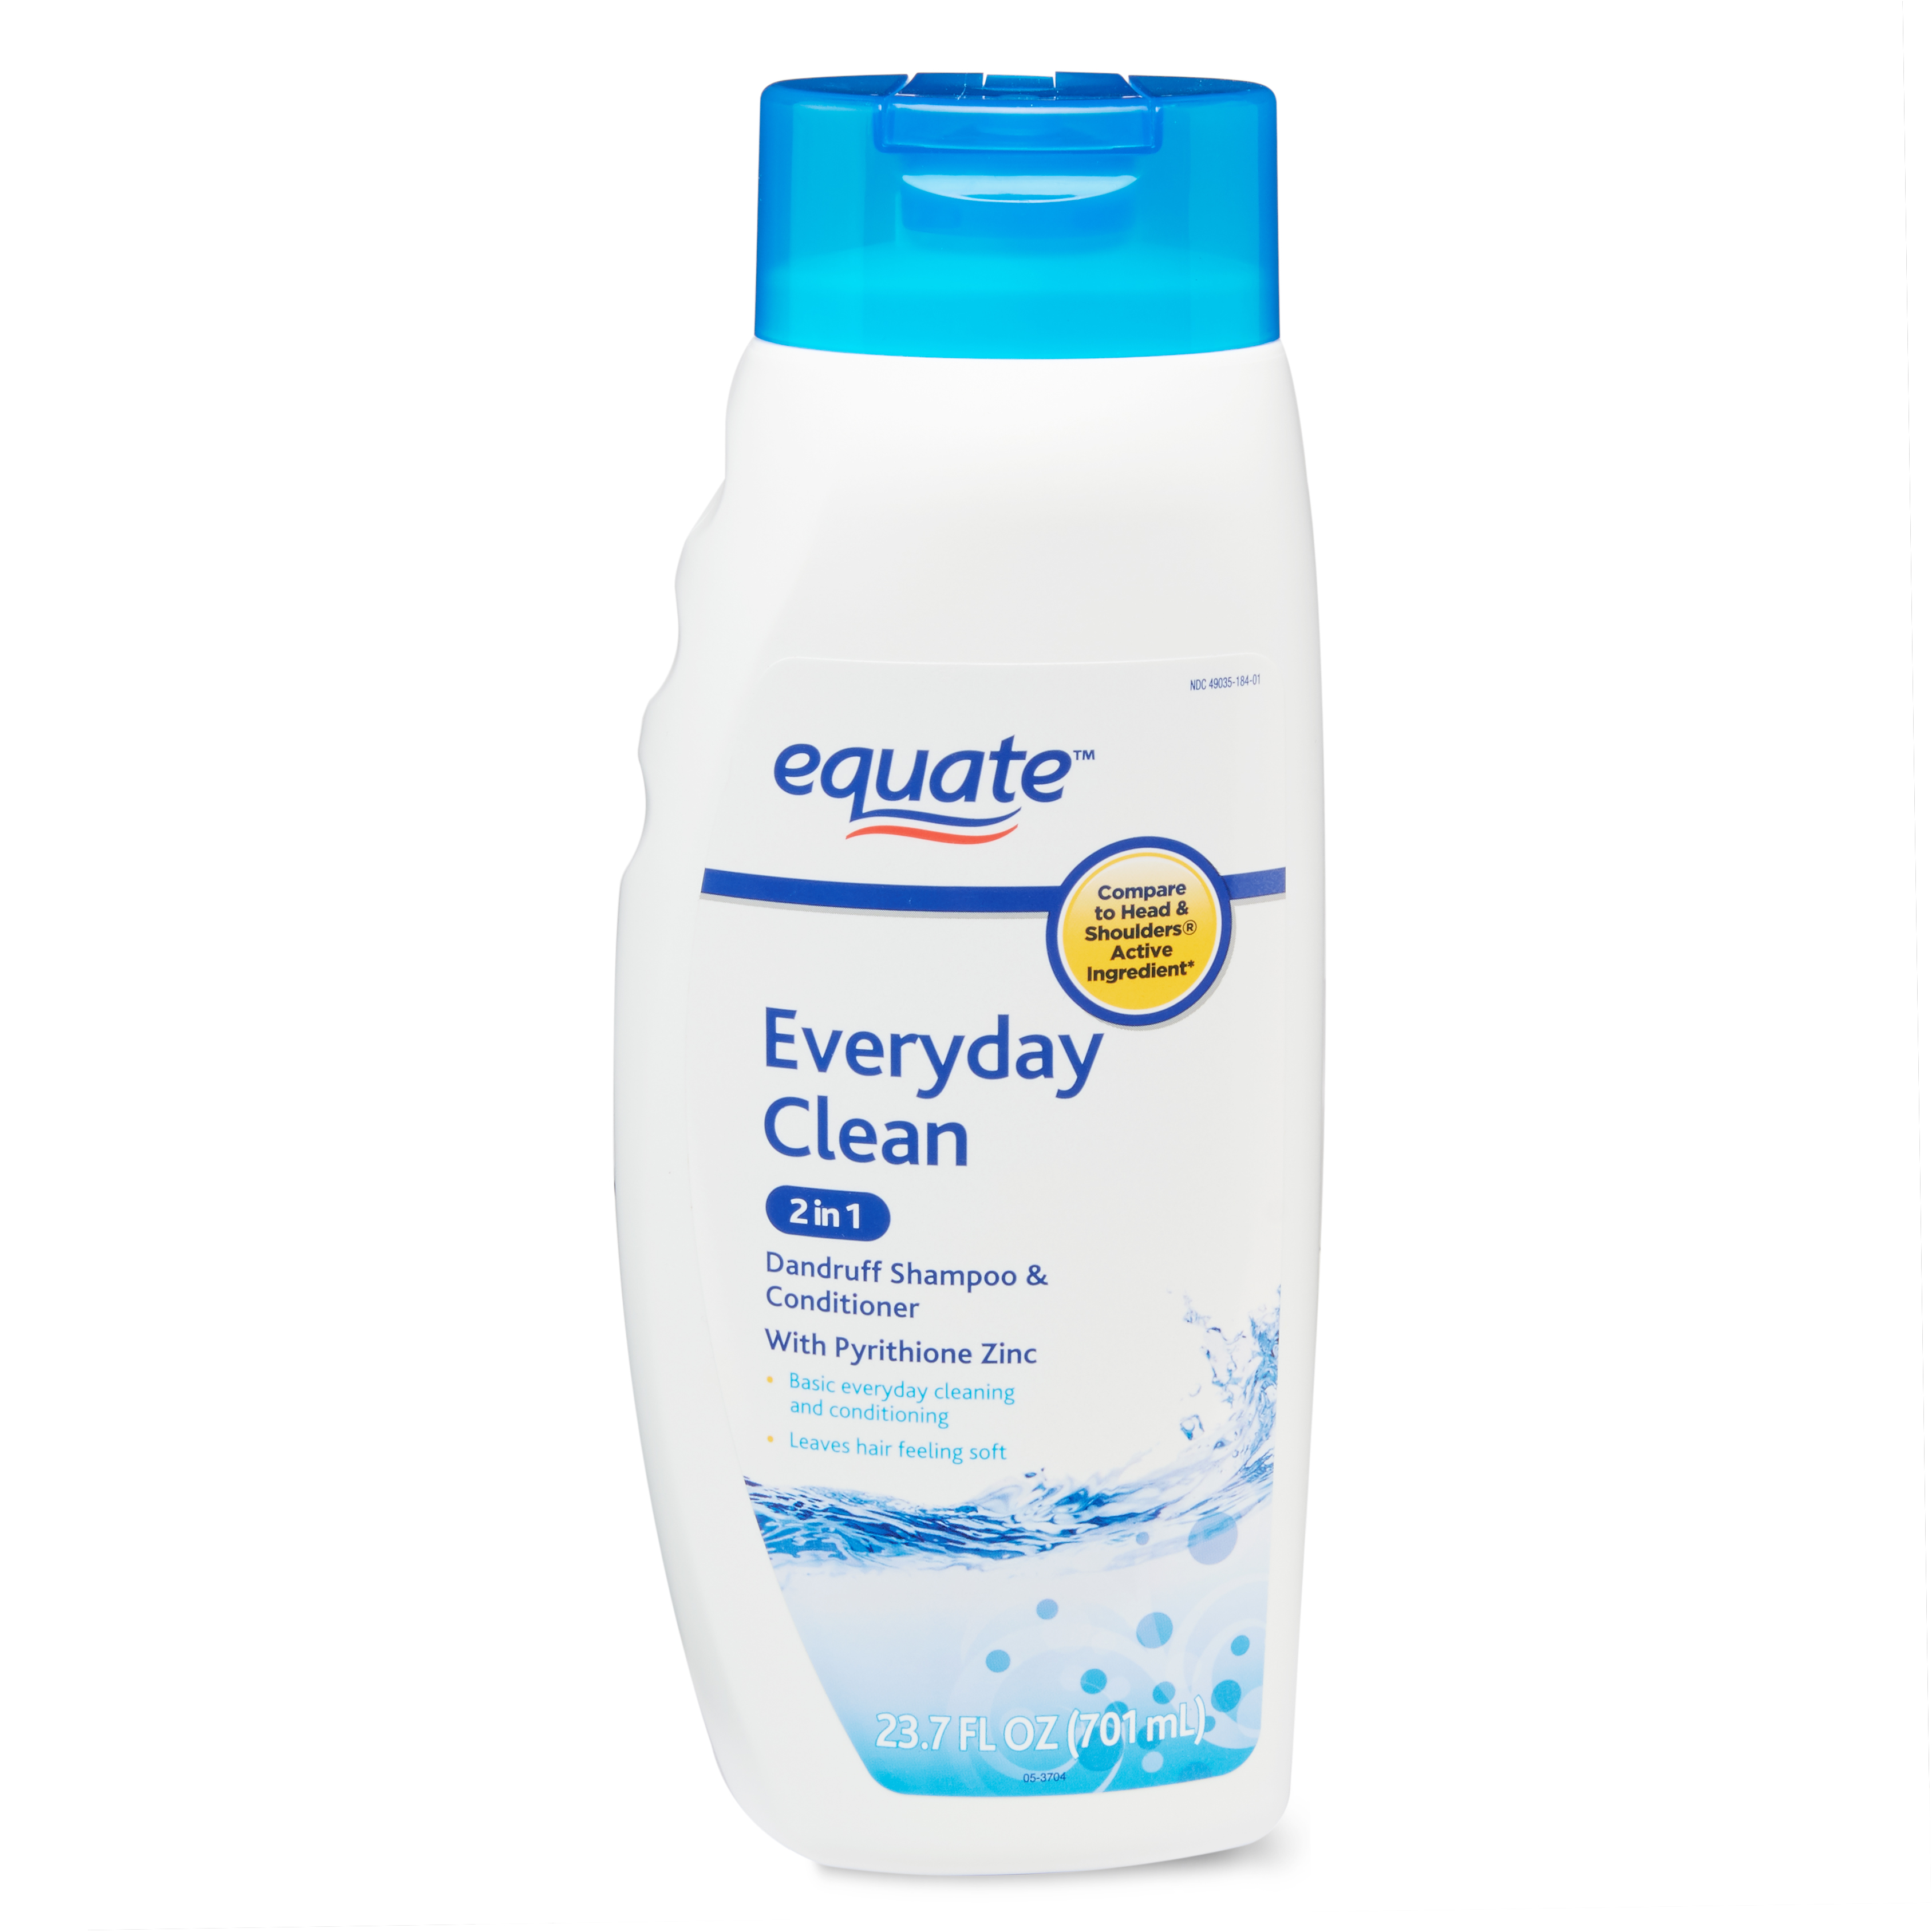 Equate 2-in-1 Dandruff Shampoo & Conditioner, Everyday Clean, 23.7 fl oz